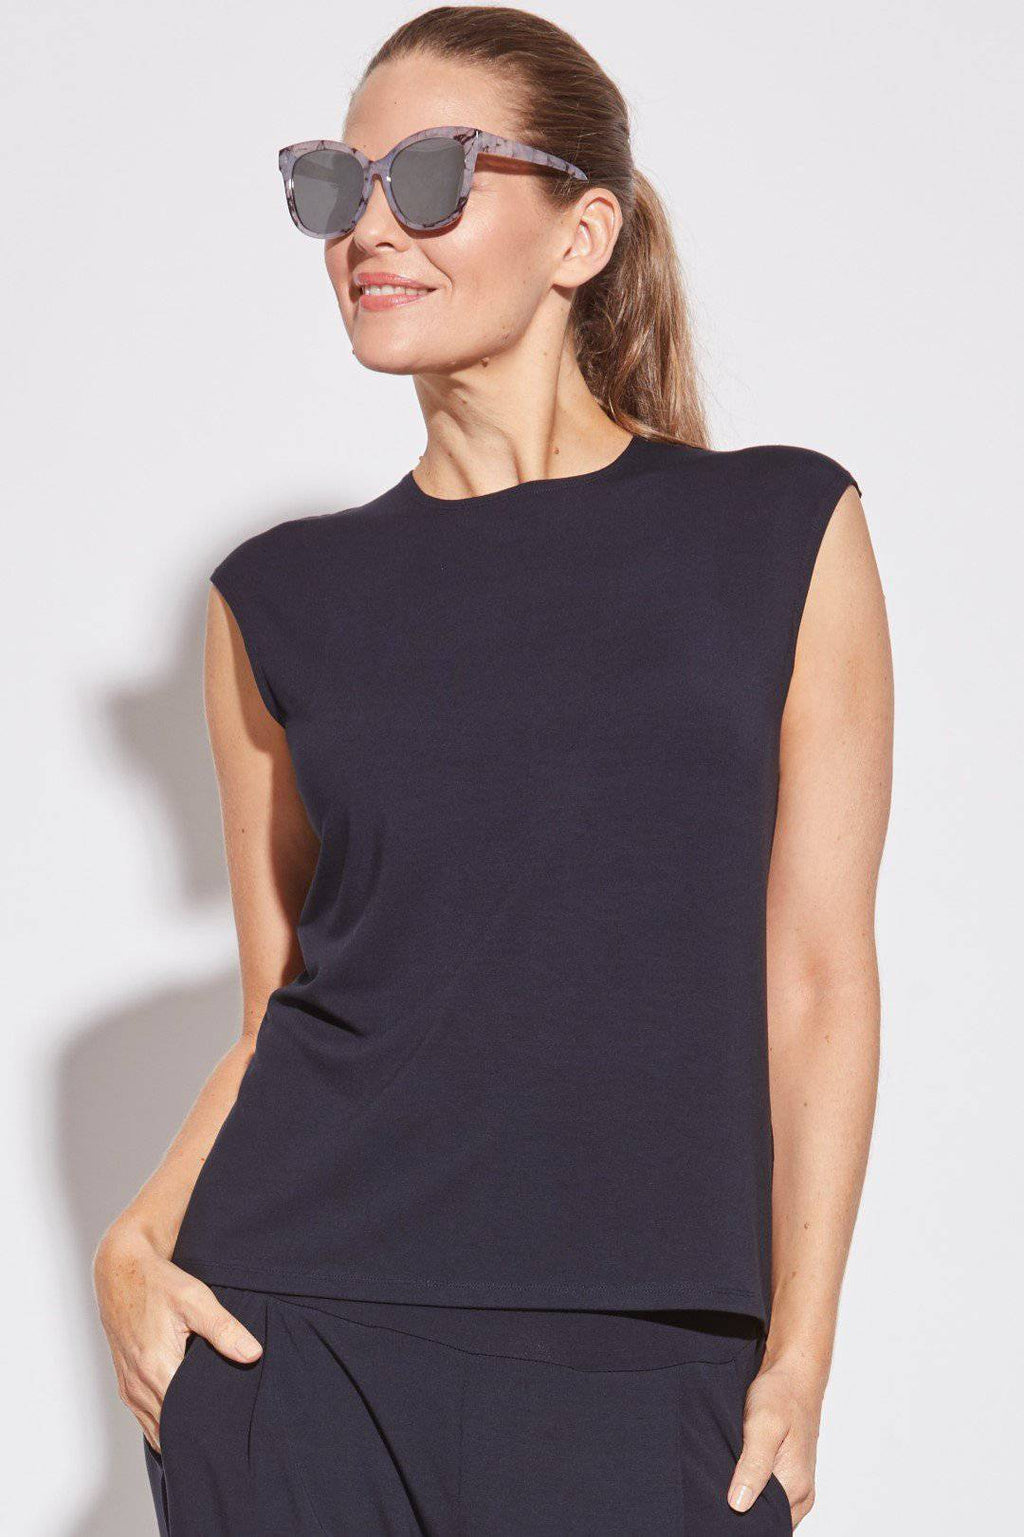 PAULA RYAN ESSENTIALS Easy Fit Cap Sleeve Crew Neck Top - MicroModal - Paula Ryan